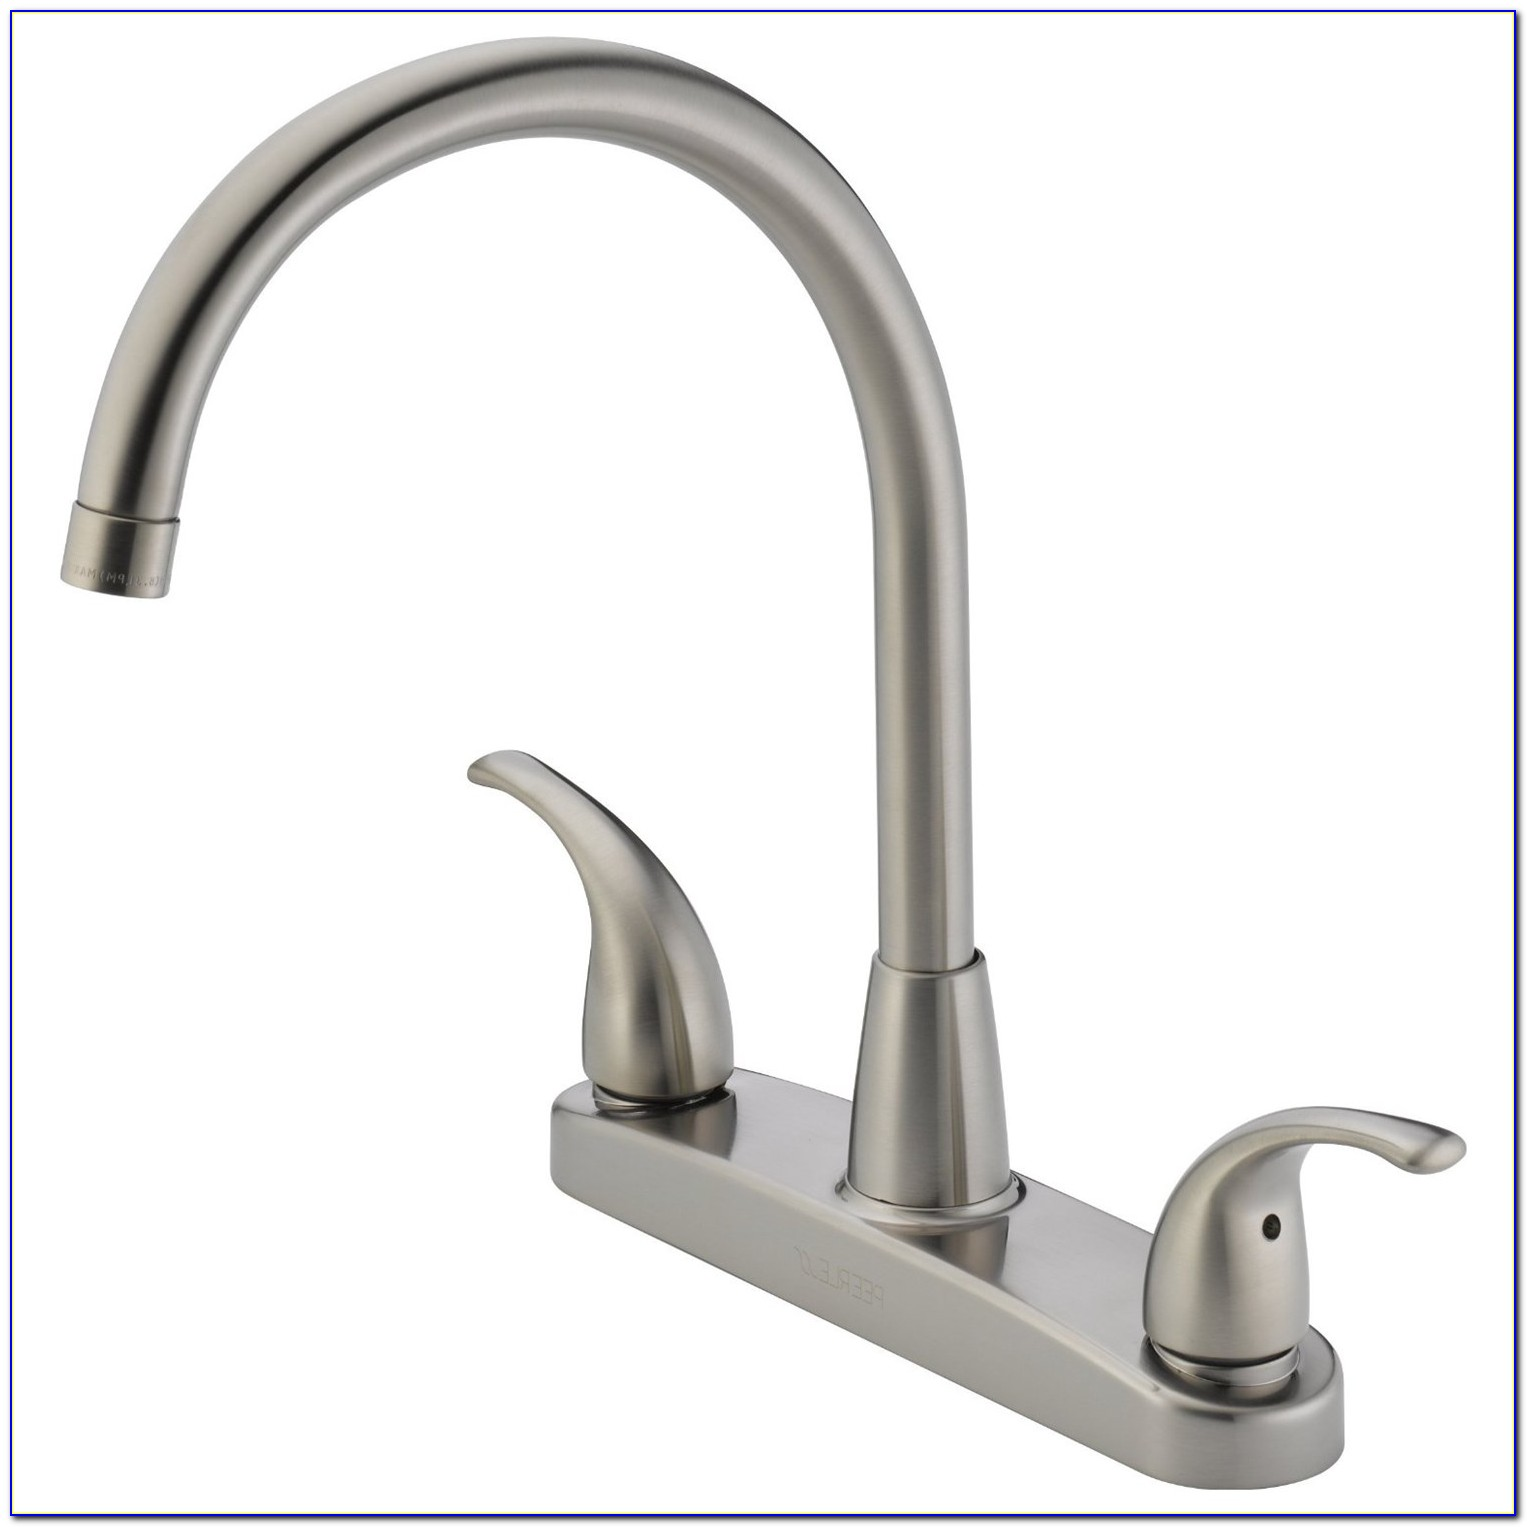 Moen Single Handle Kitchen Faucet Leaking At Handle